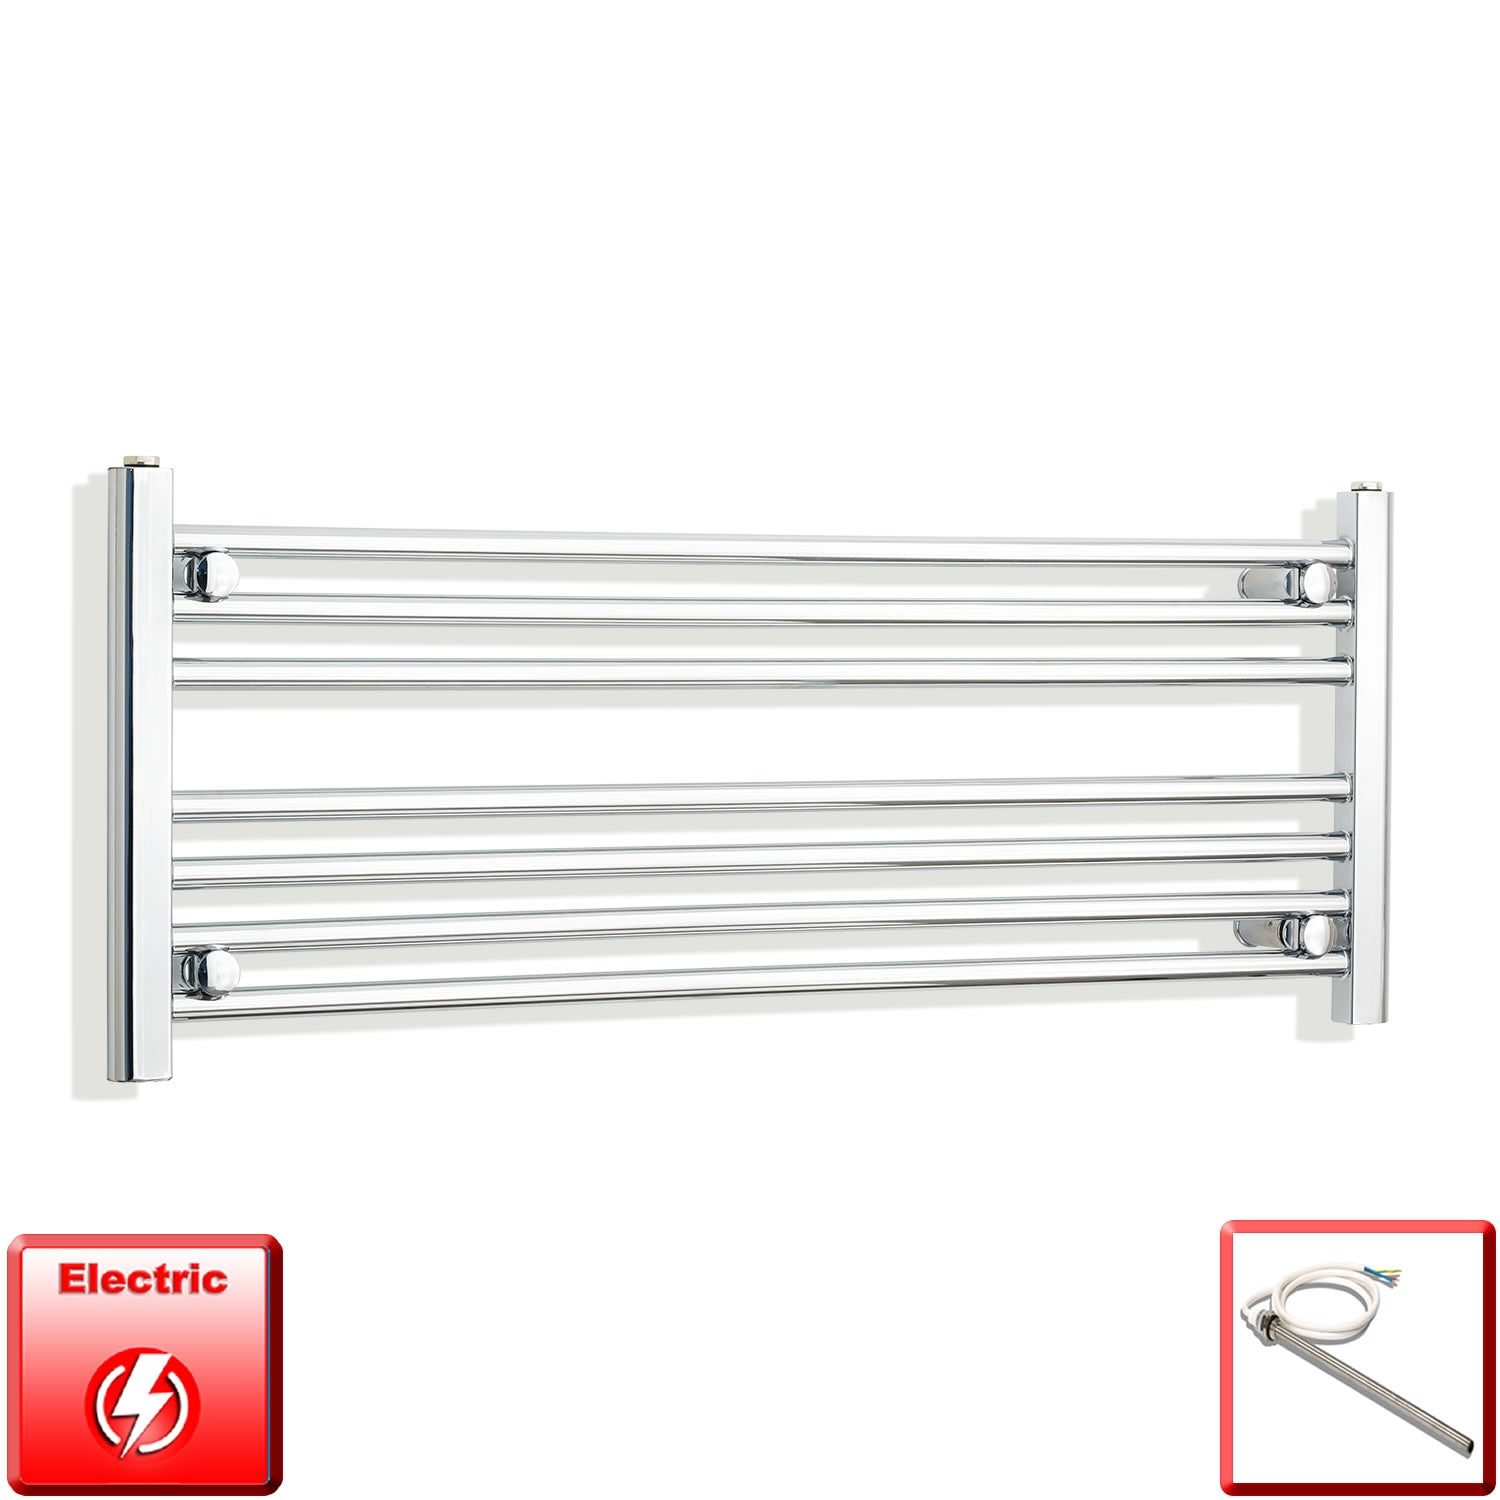 1000mm Wide 400mm High Pre-Filled Chrome Electric Towel Rail Radiator With Single Heat Element